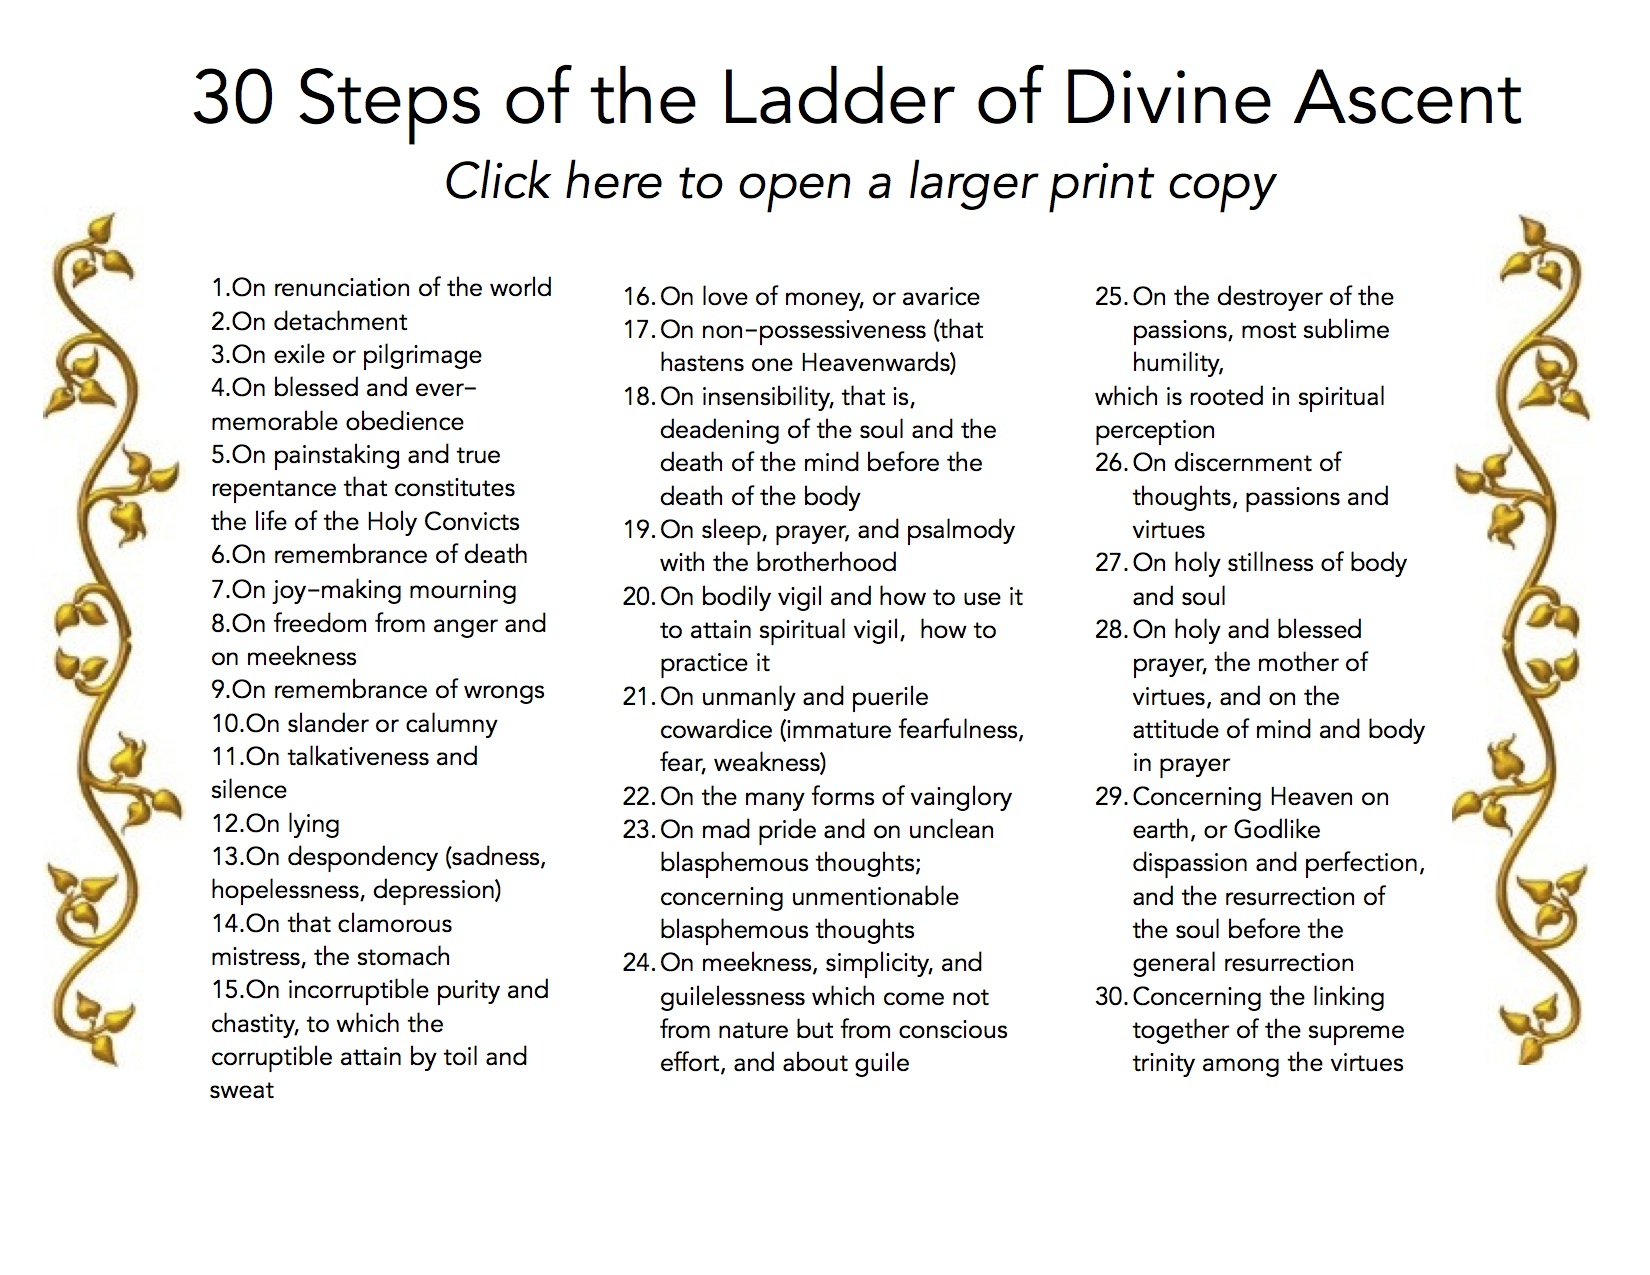 30 steps of ladder